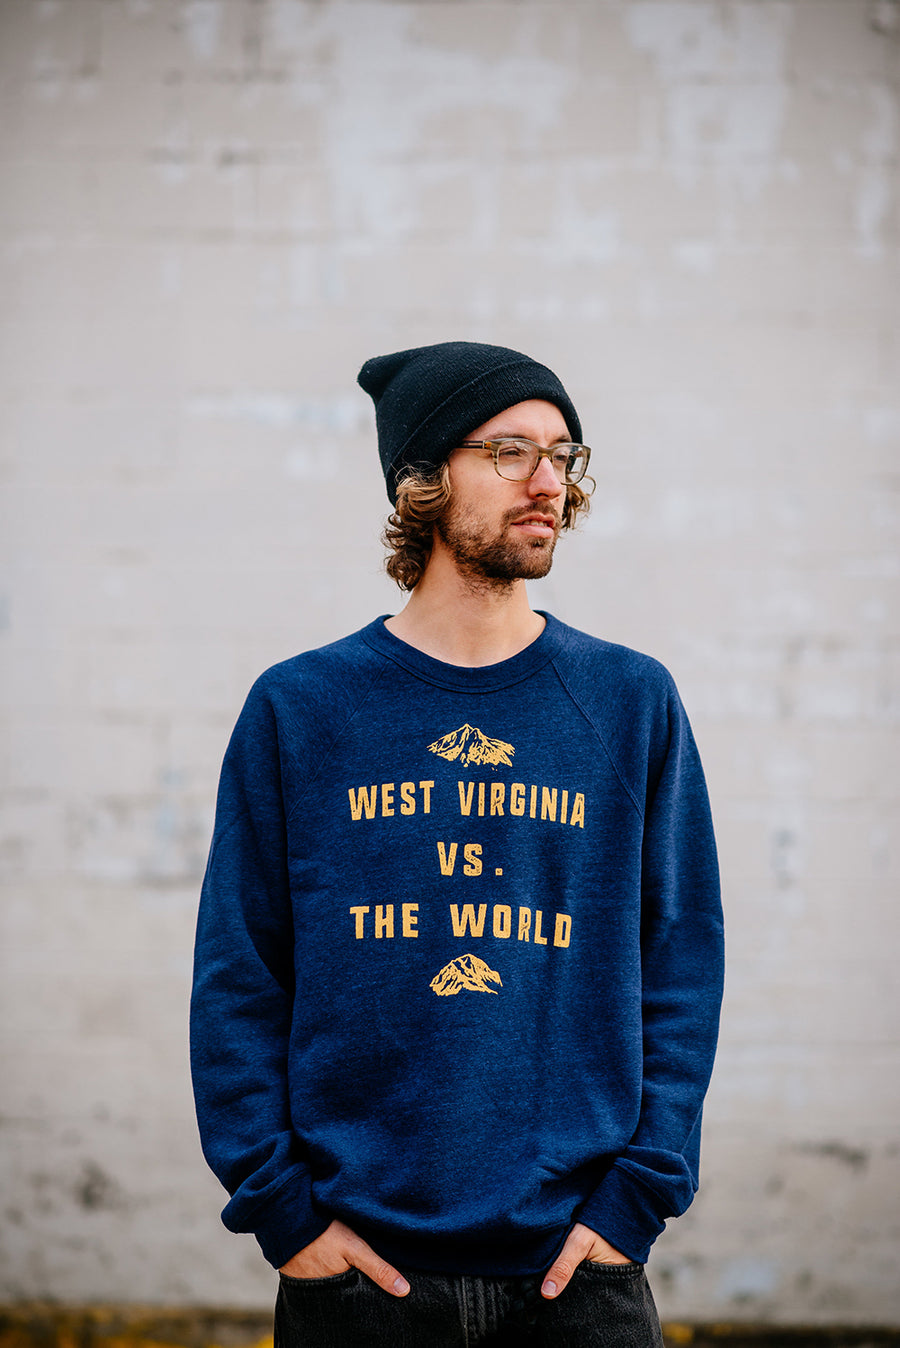 wv vs world sweatshirt